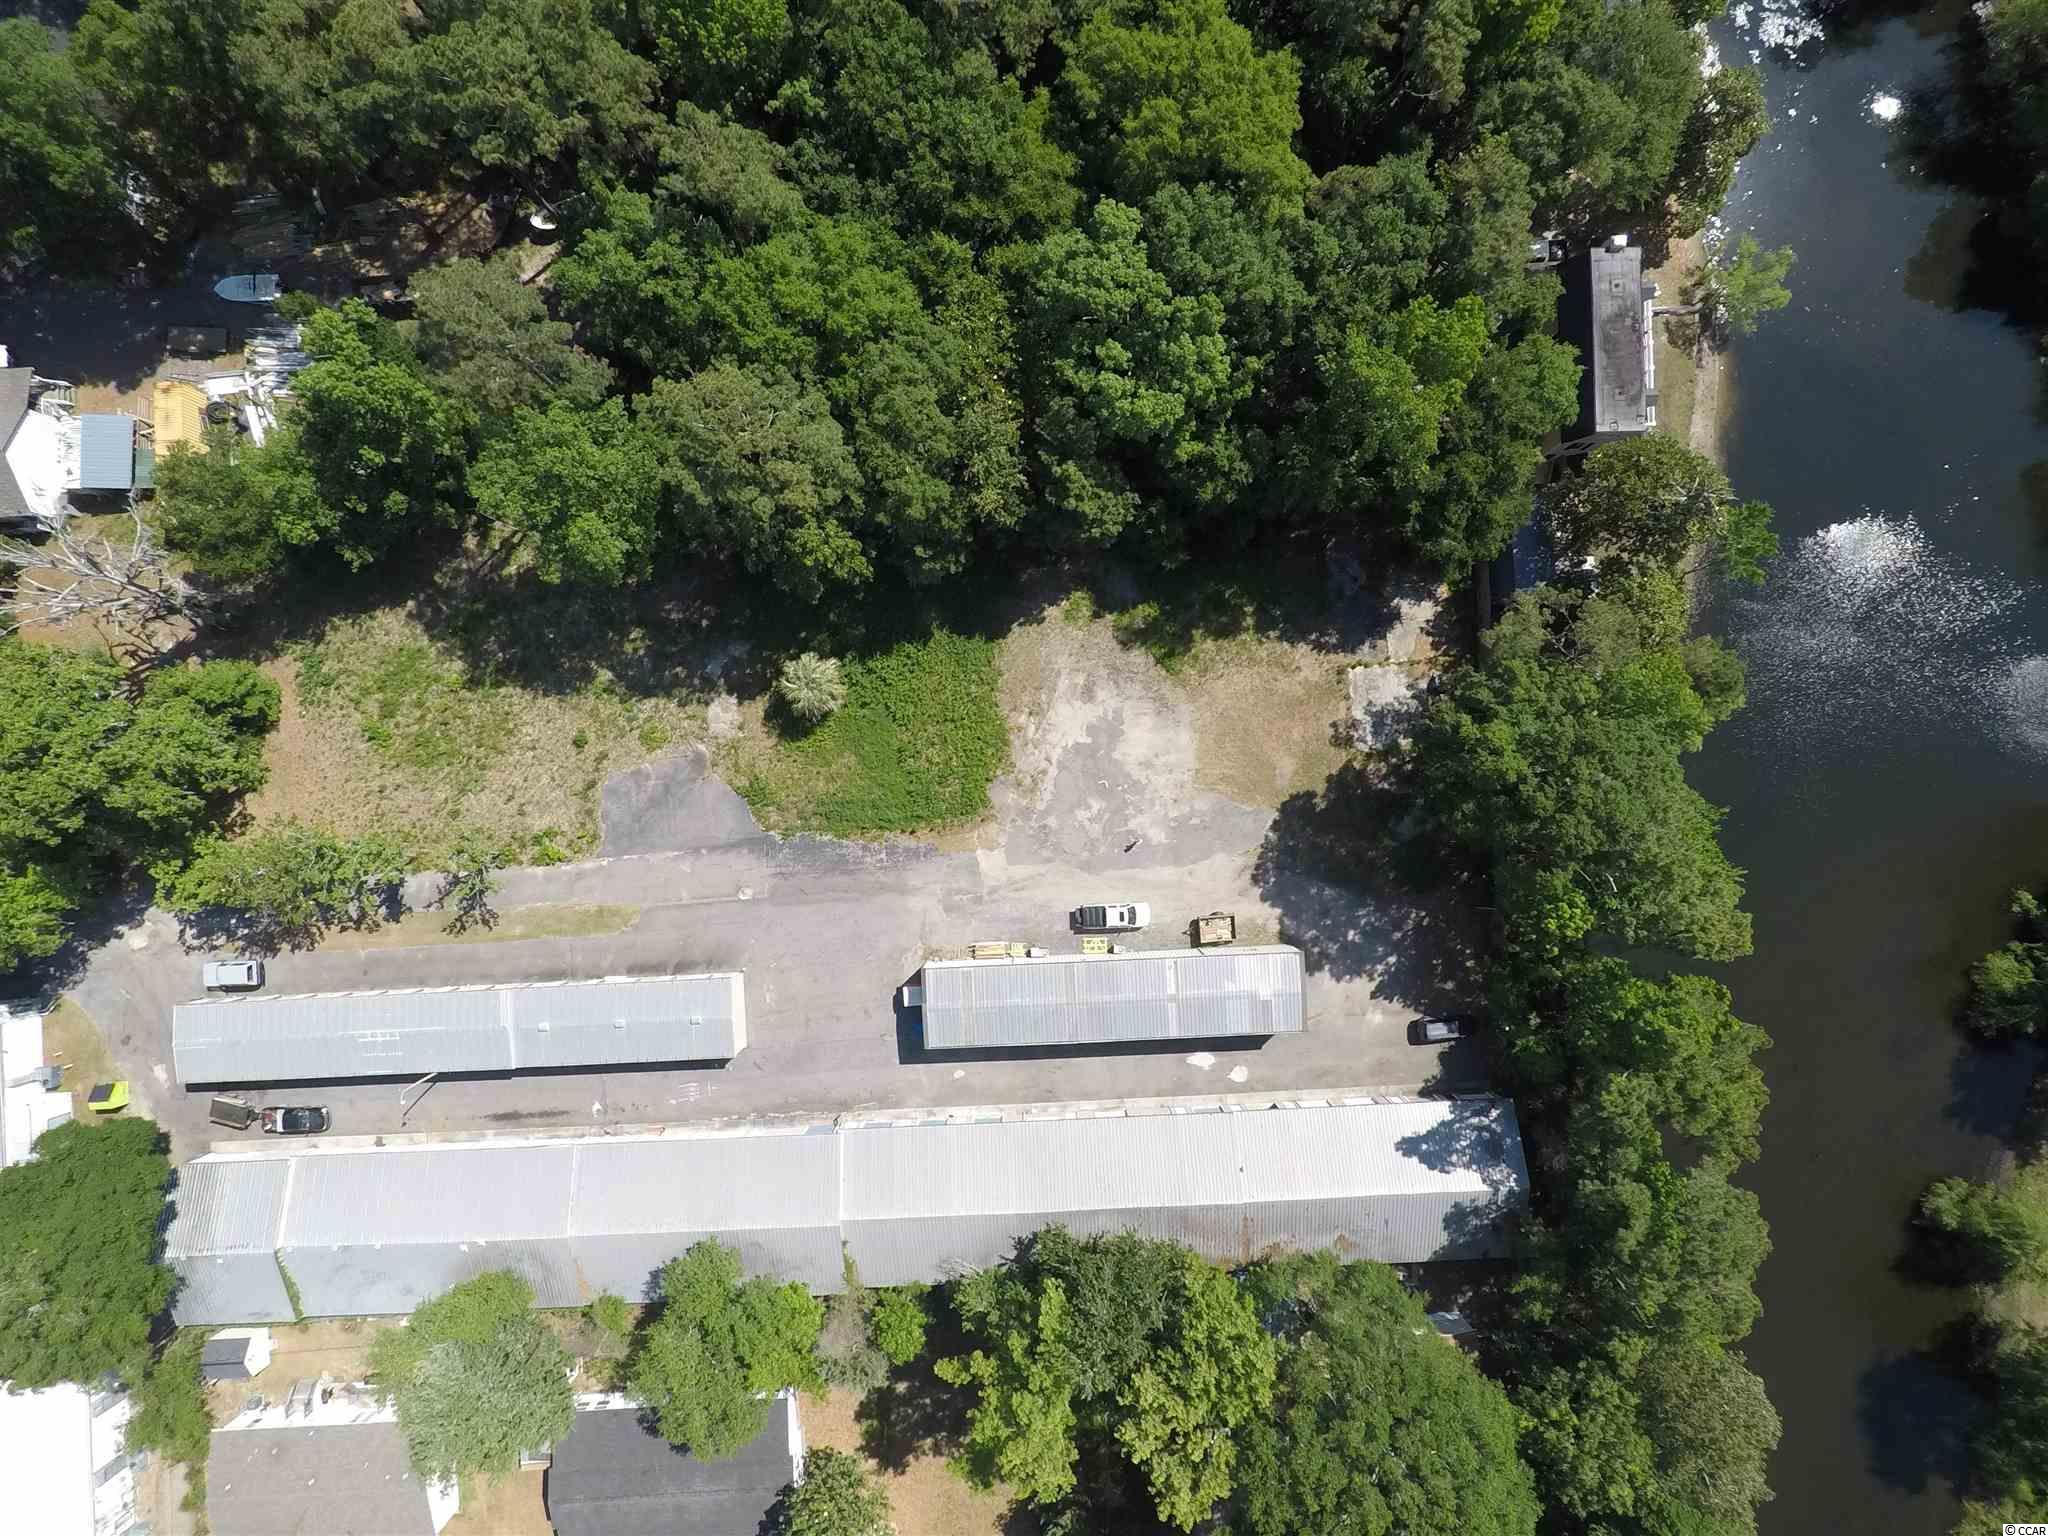 0.83 acres of cleared land with commercial zoning located off of Highway 17 Business.  Ideal for any commercial business with excellent traffic potential.  Schedule your showing in today!